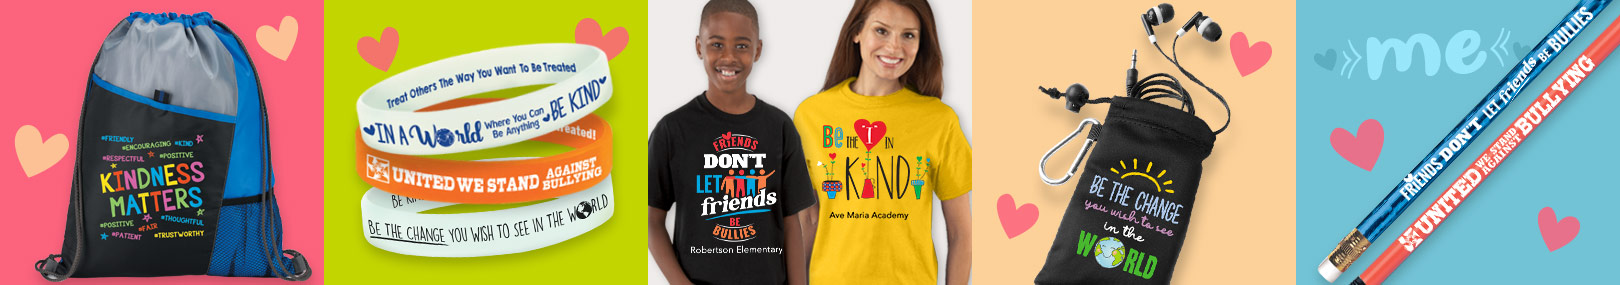 Anti bullying handouts from Positive Promotions